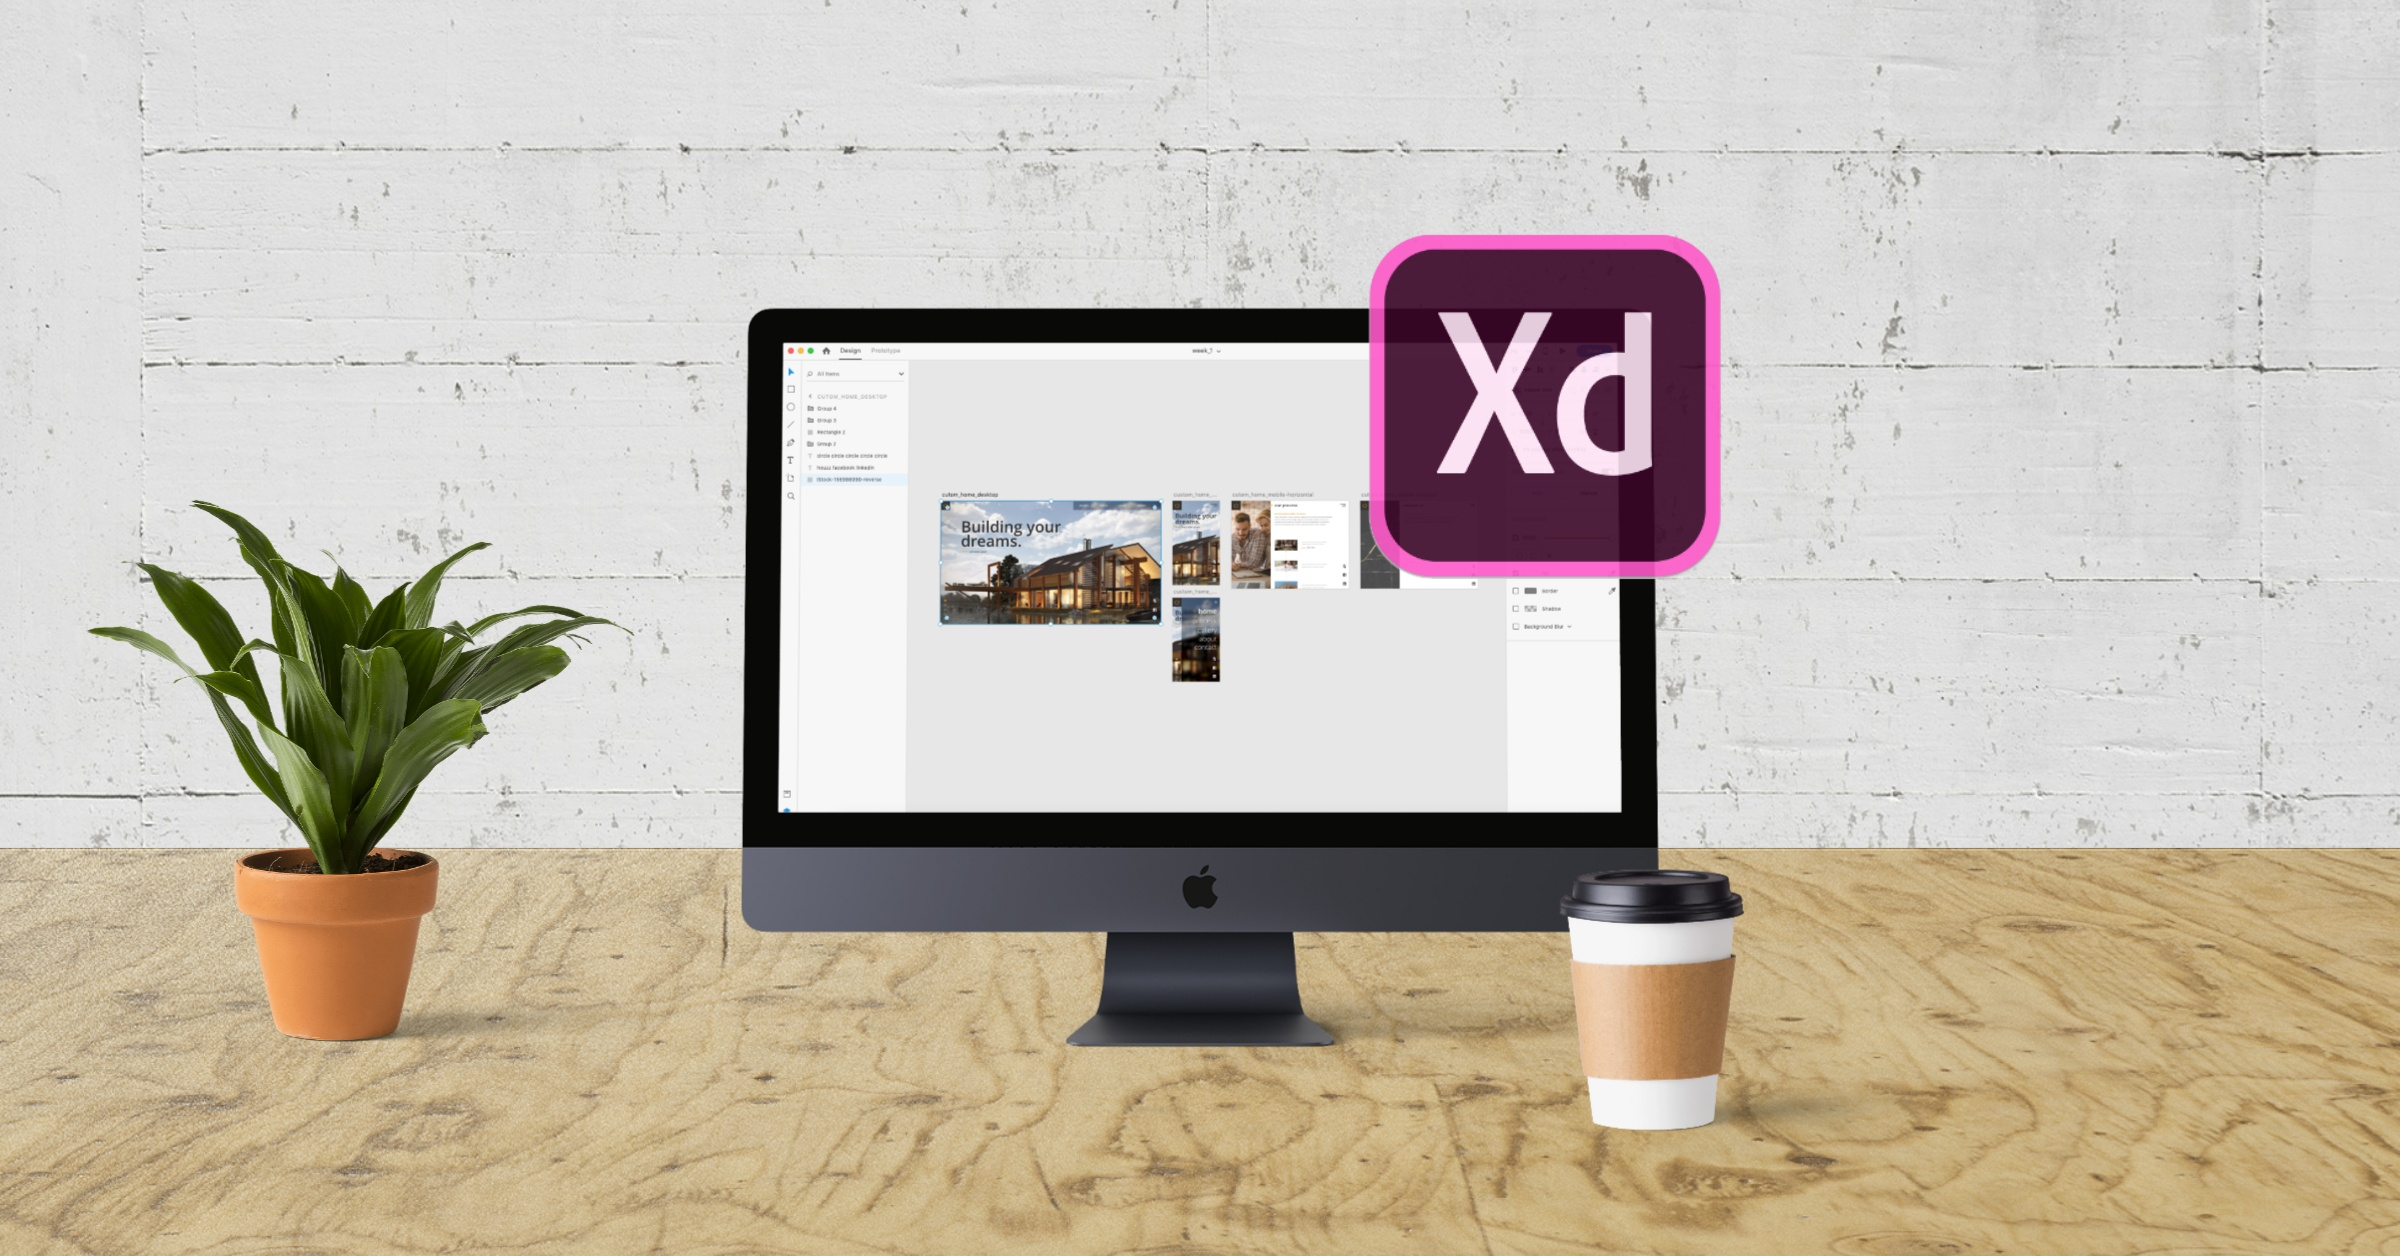 Adobe XD on iMac